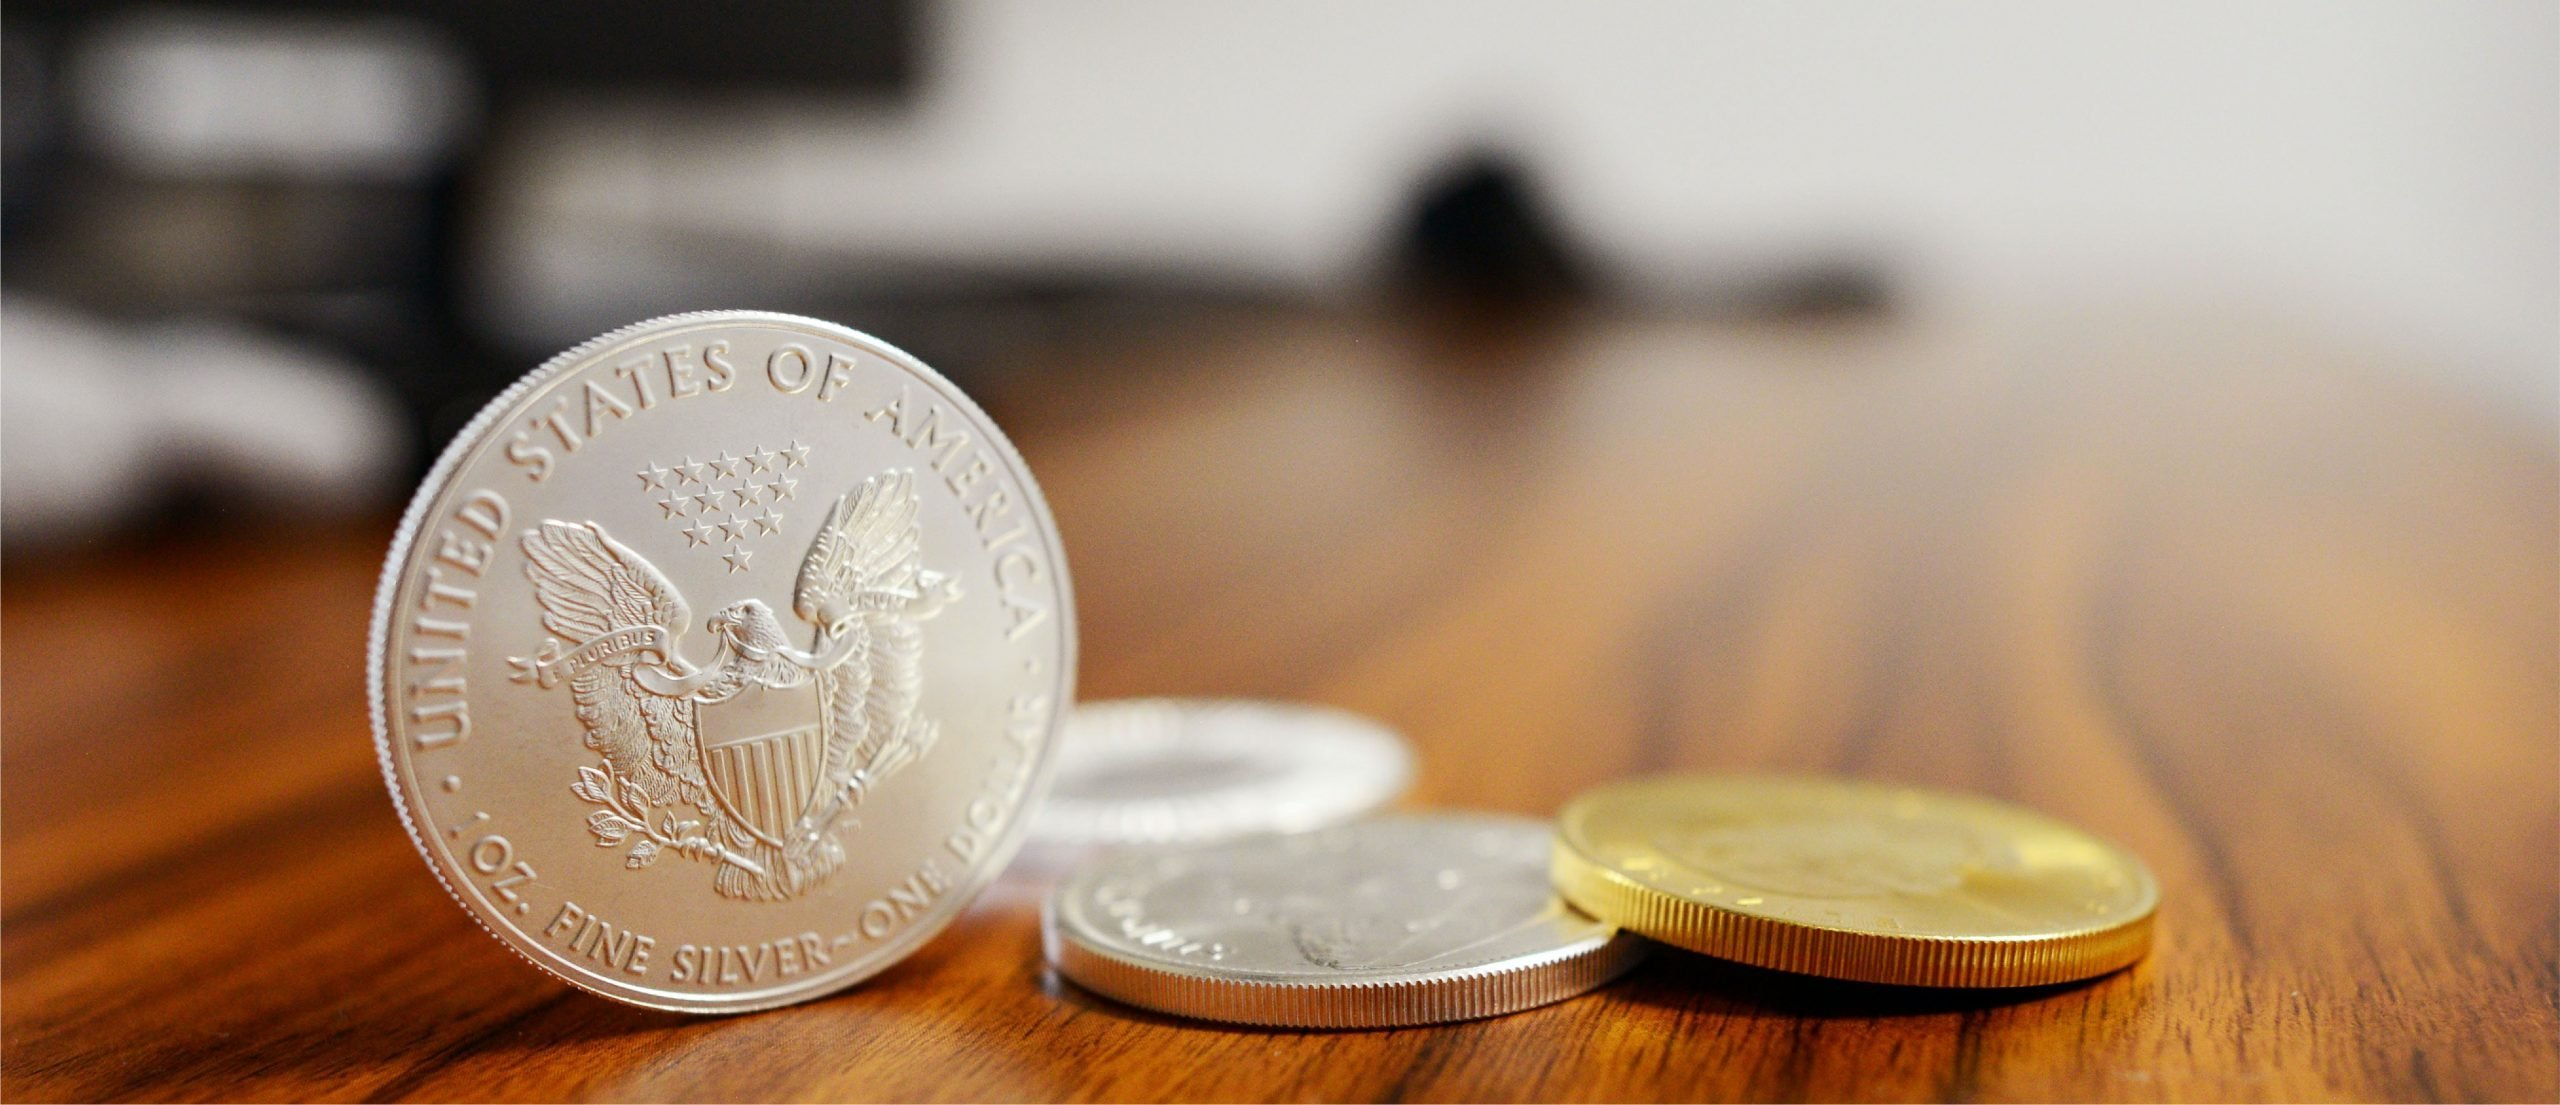 A photo of coins